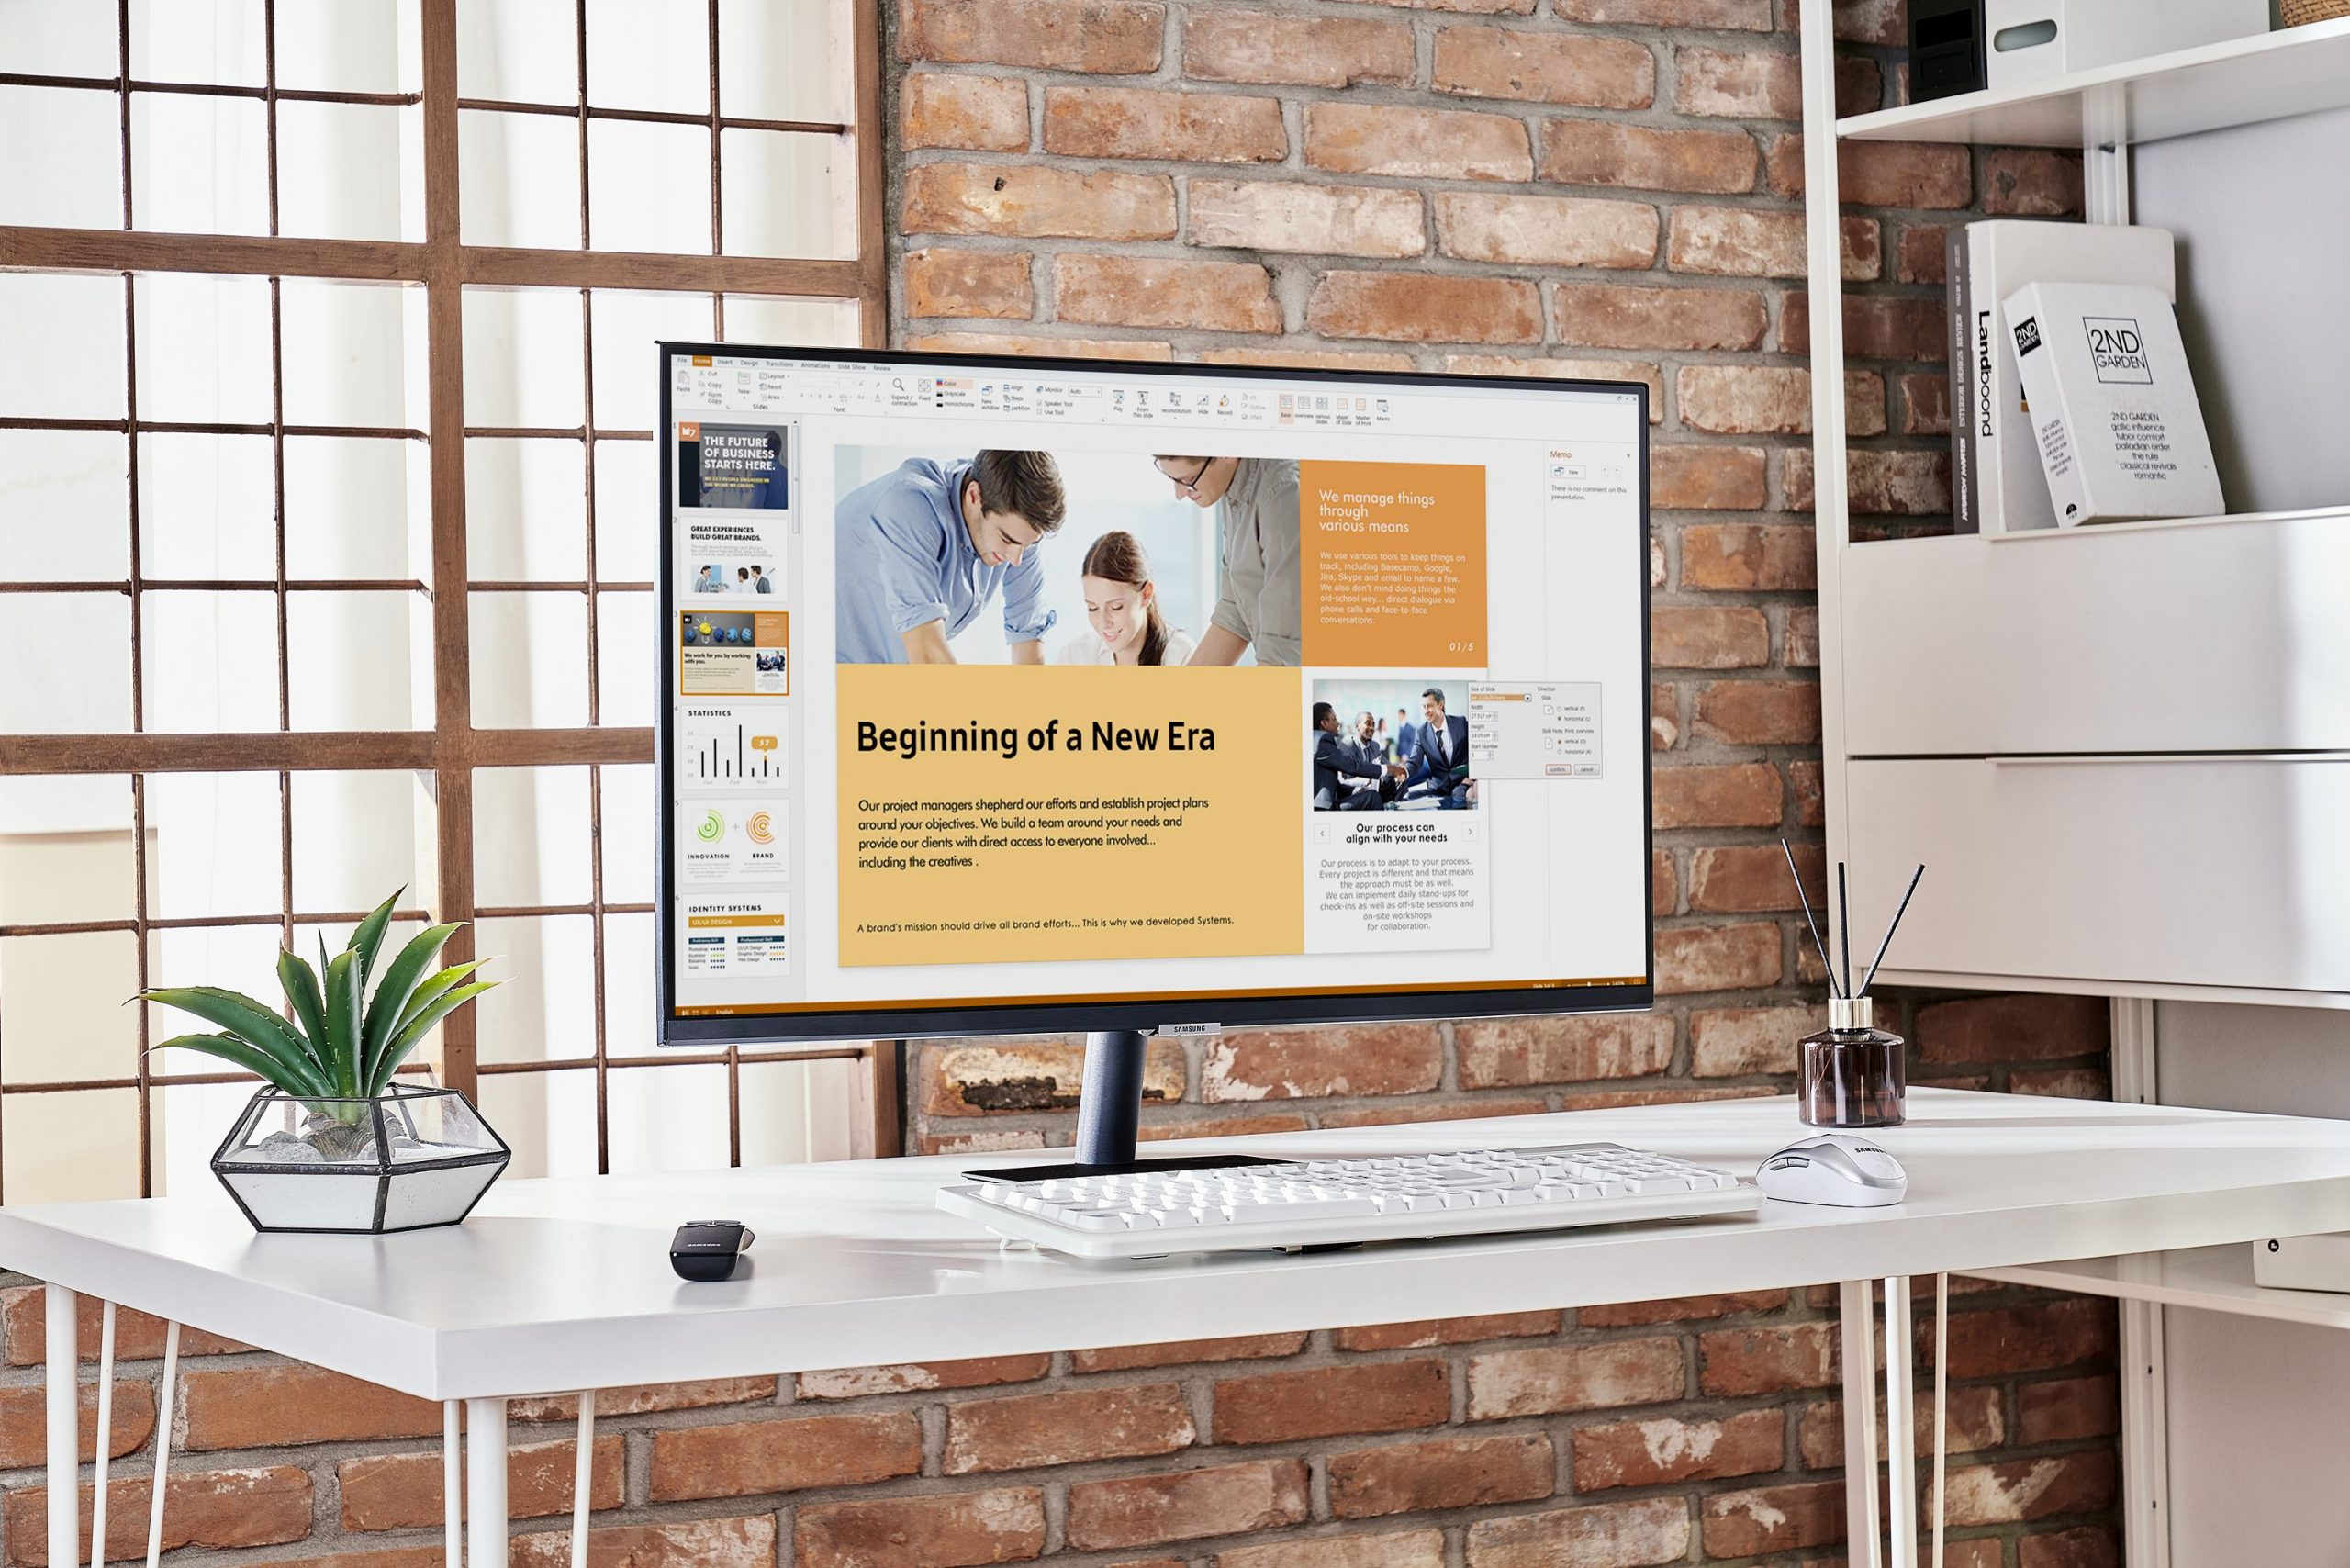 Samsung ranks 5th in 2020 PC monitor market: report